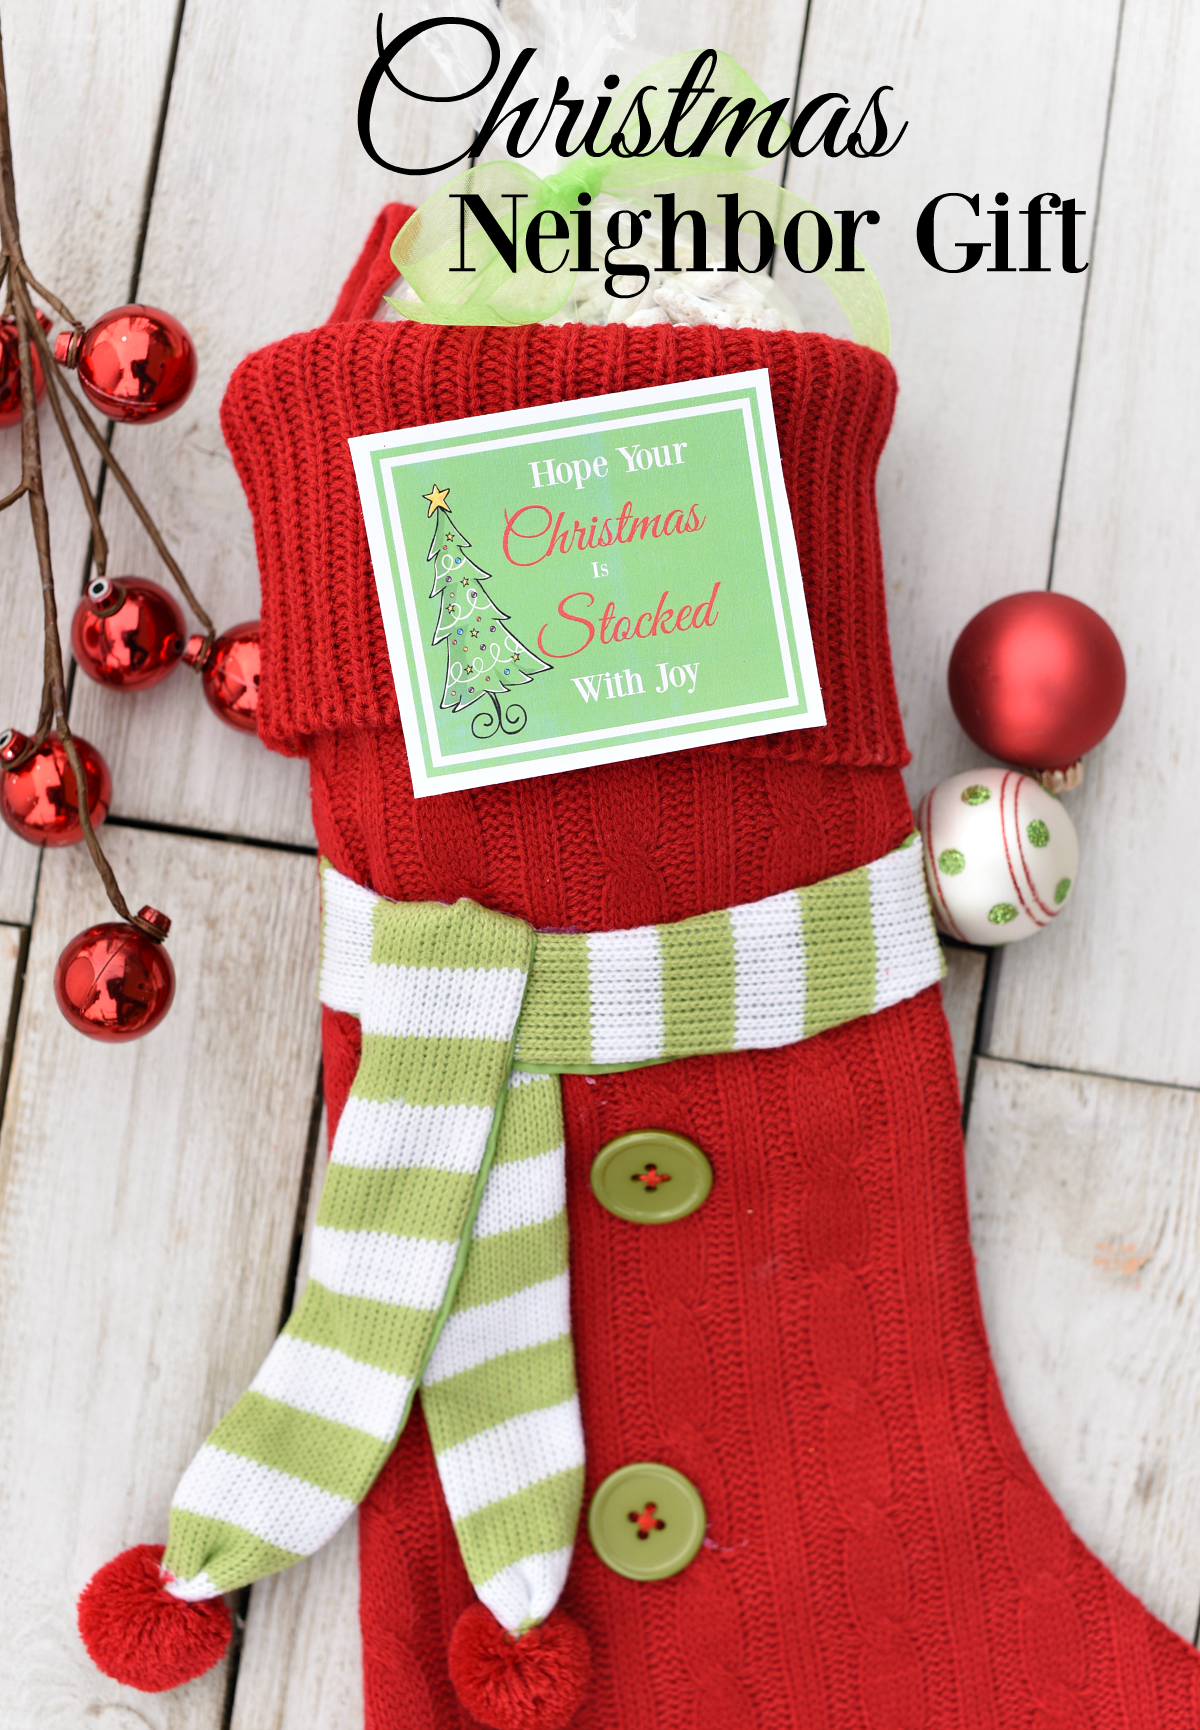 Hope Your Christmas is Stocked with Joy-This cute and simple Christmas Neighbor Gift is fun to give. Just fill a stocking with a treat or something fun and add this cute printable tag and you're all set! #christmas #christmasgifts #giftideas #neighborgifts